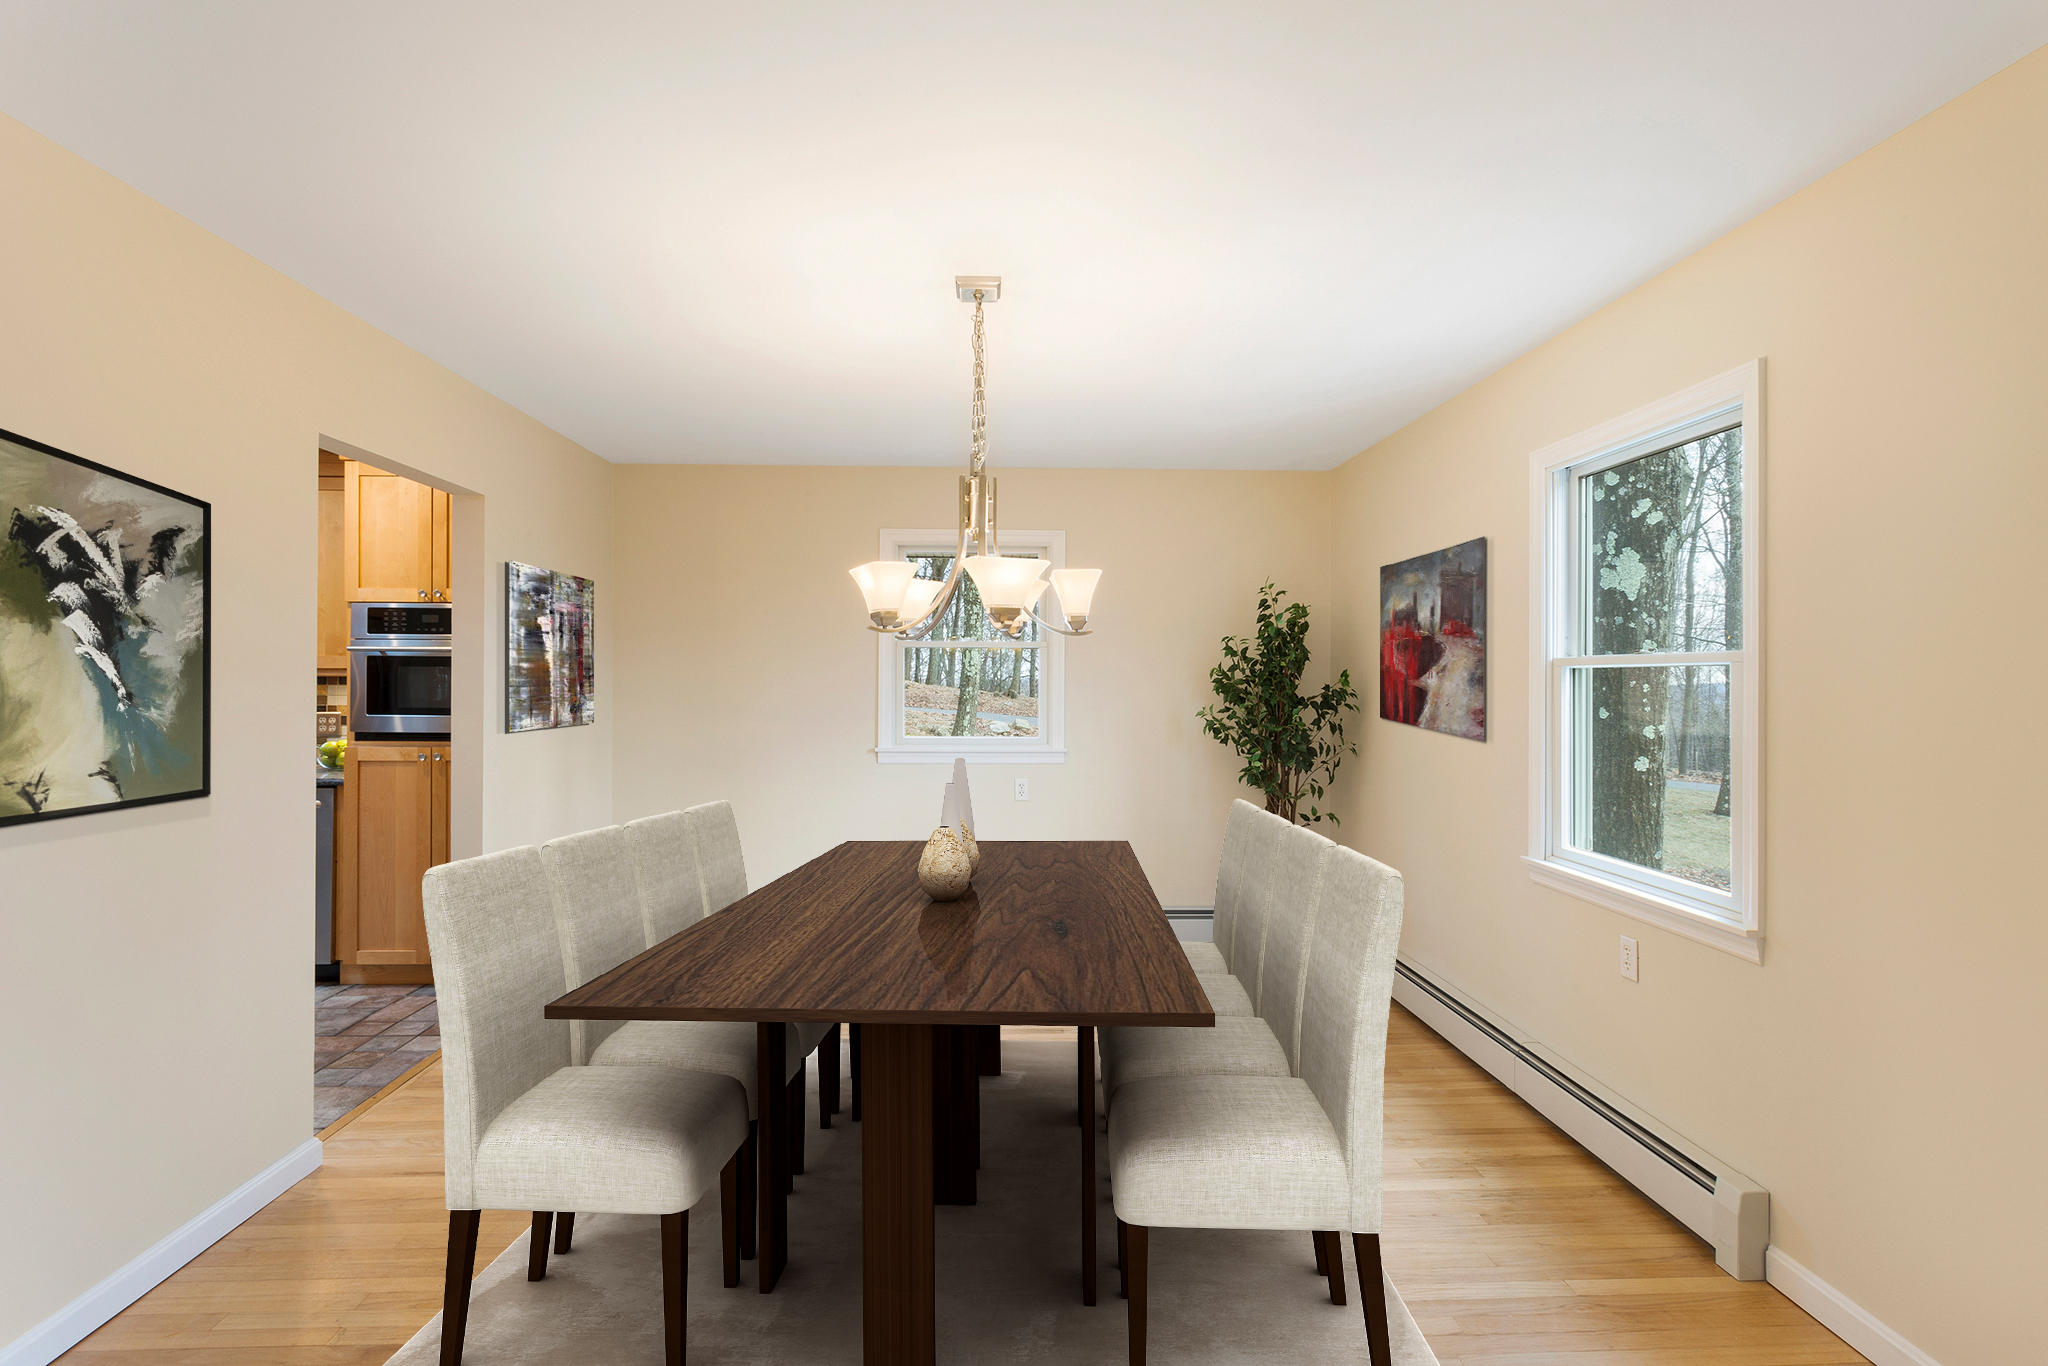 03 5 Lenore Road Tewksbury Township — Dining Room Virtually Staged